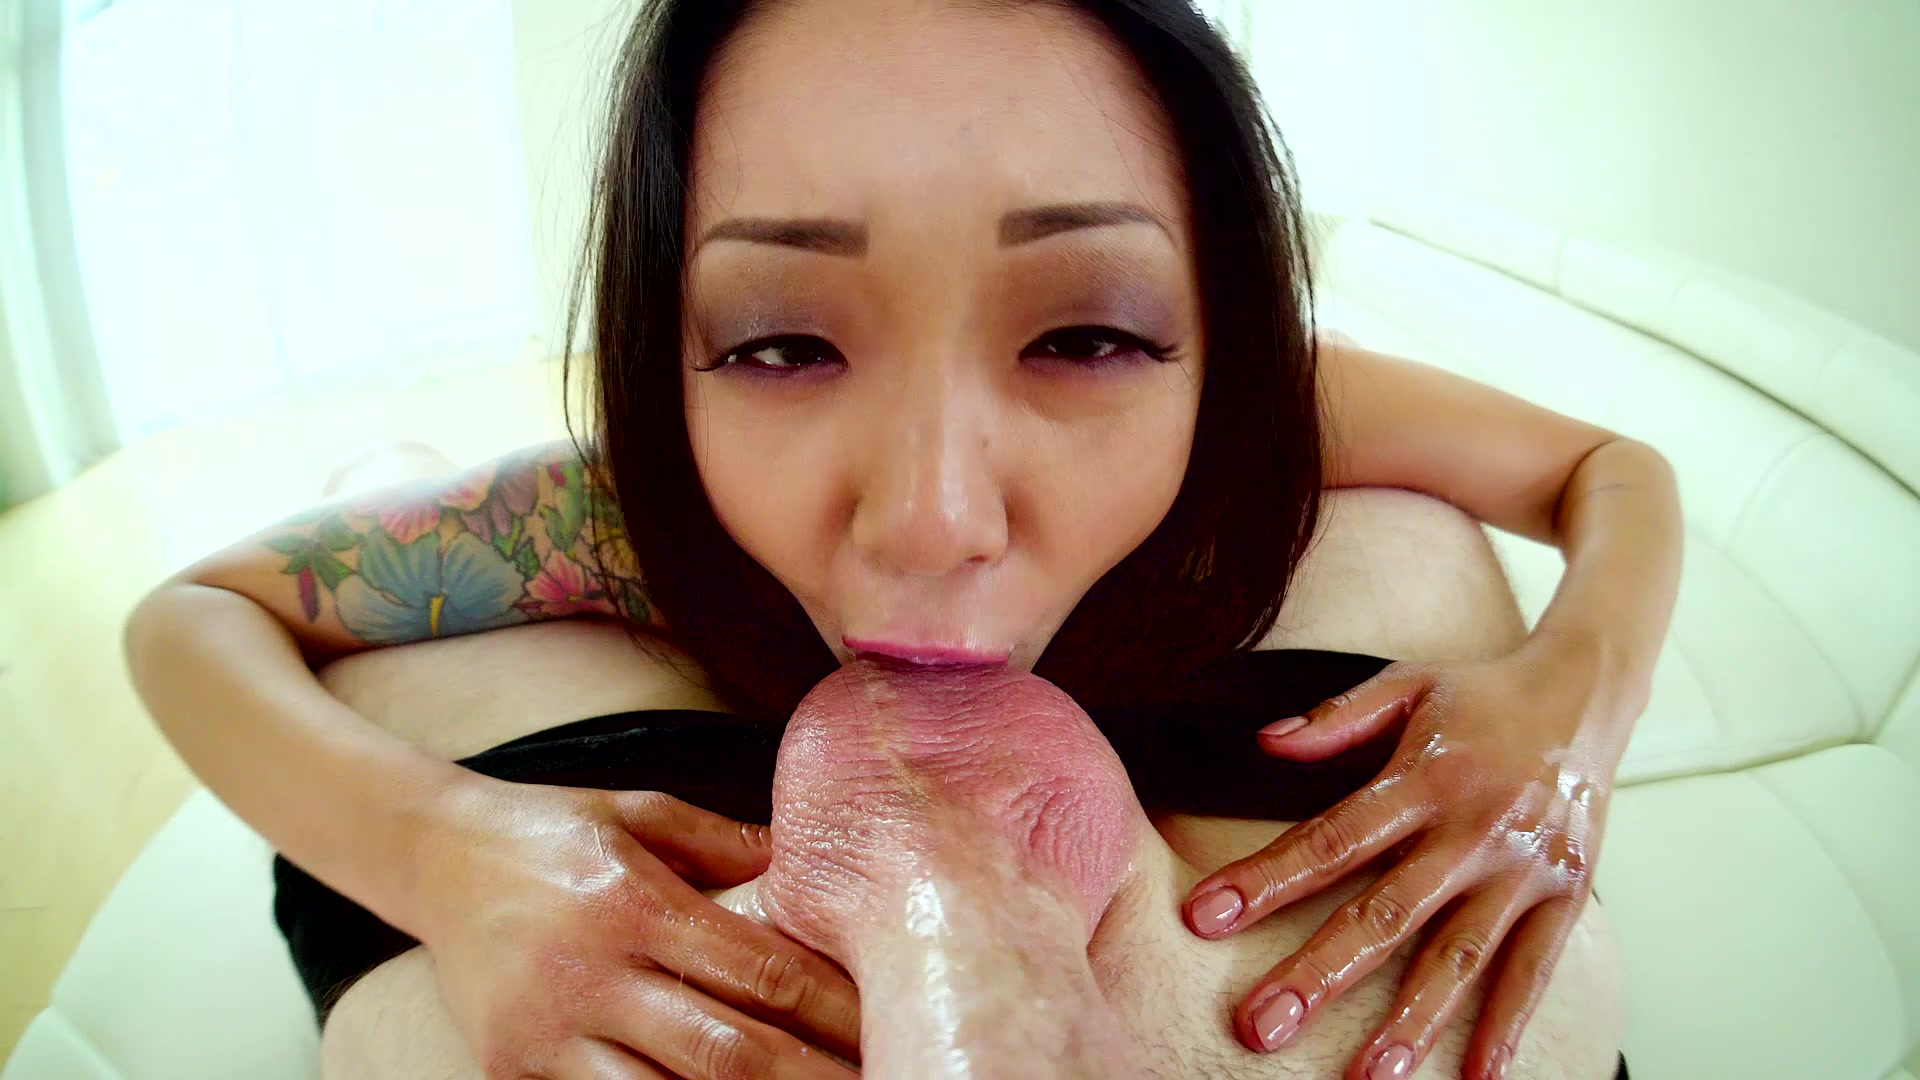 Saya song is a petite asian who squirts hard as she fucks